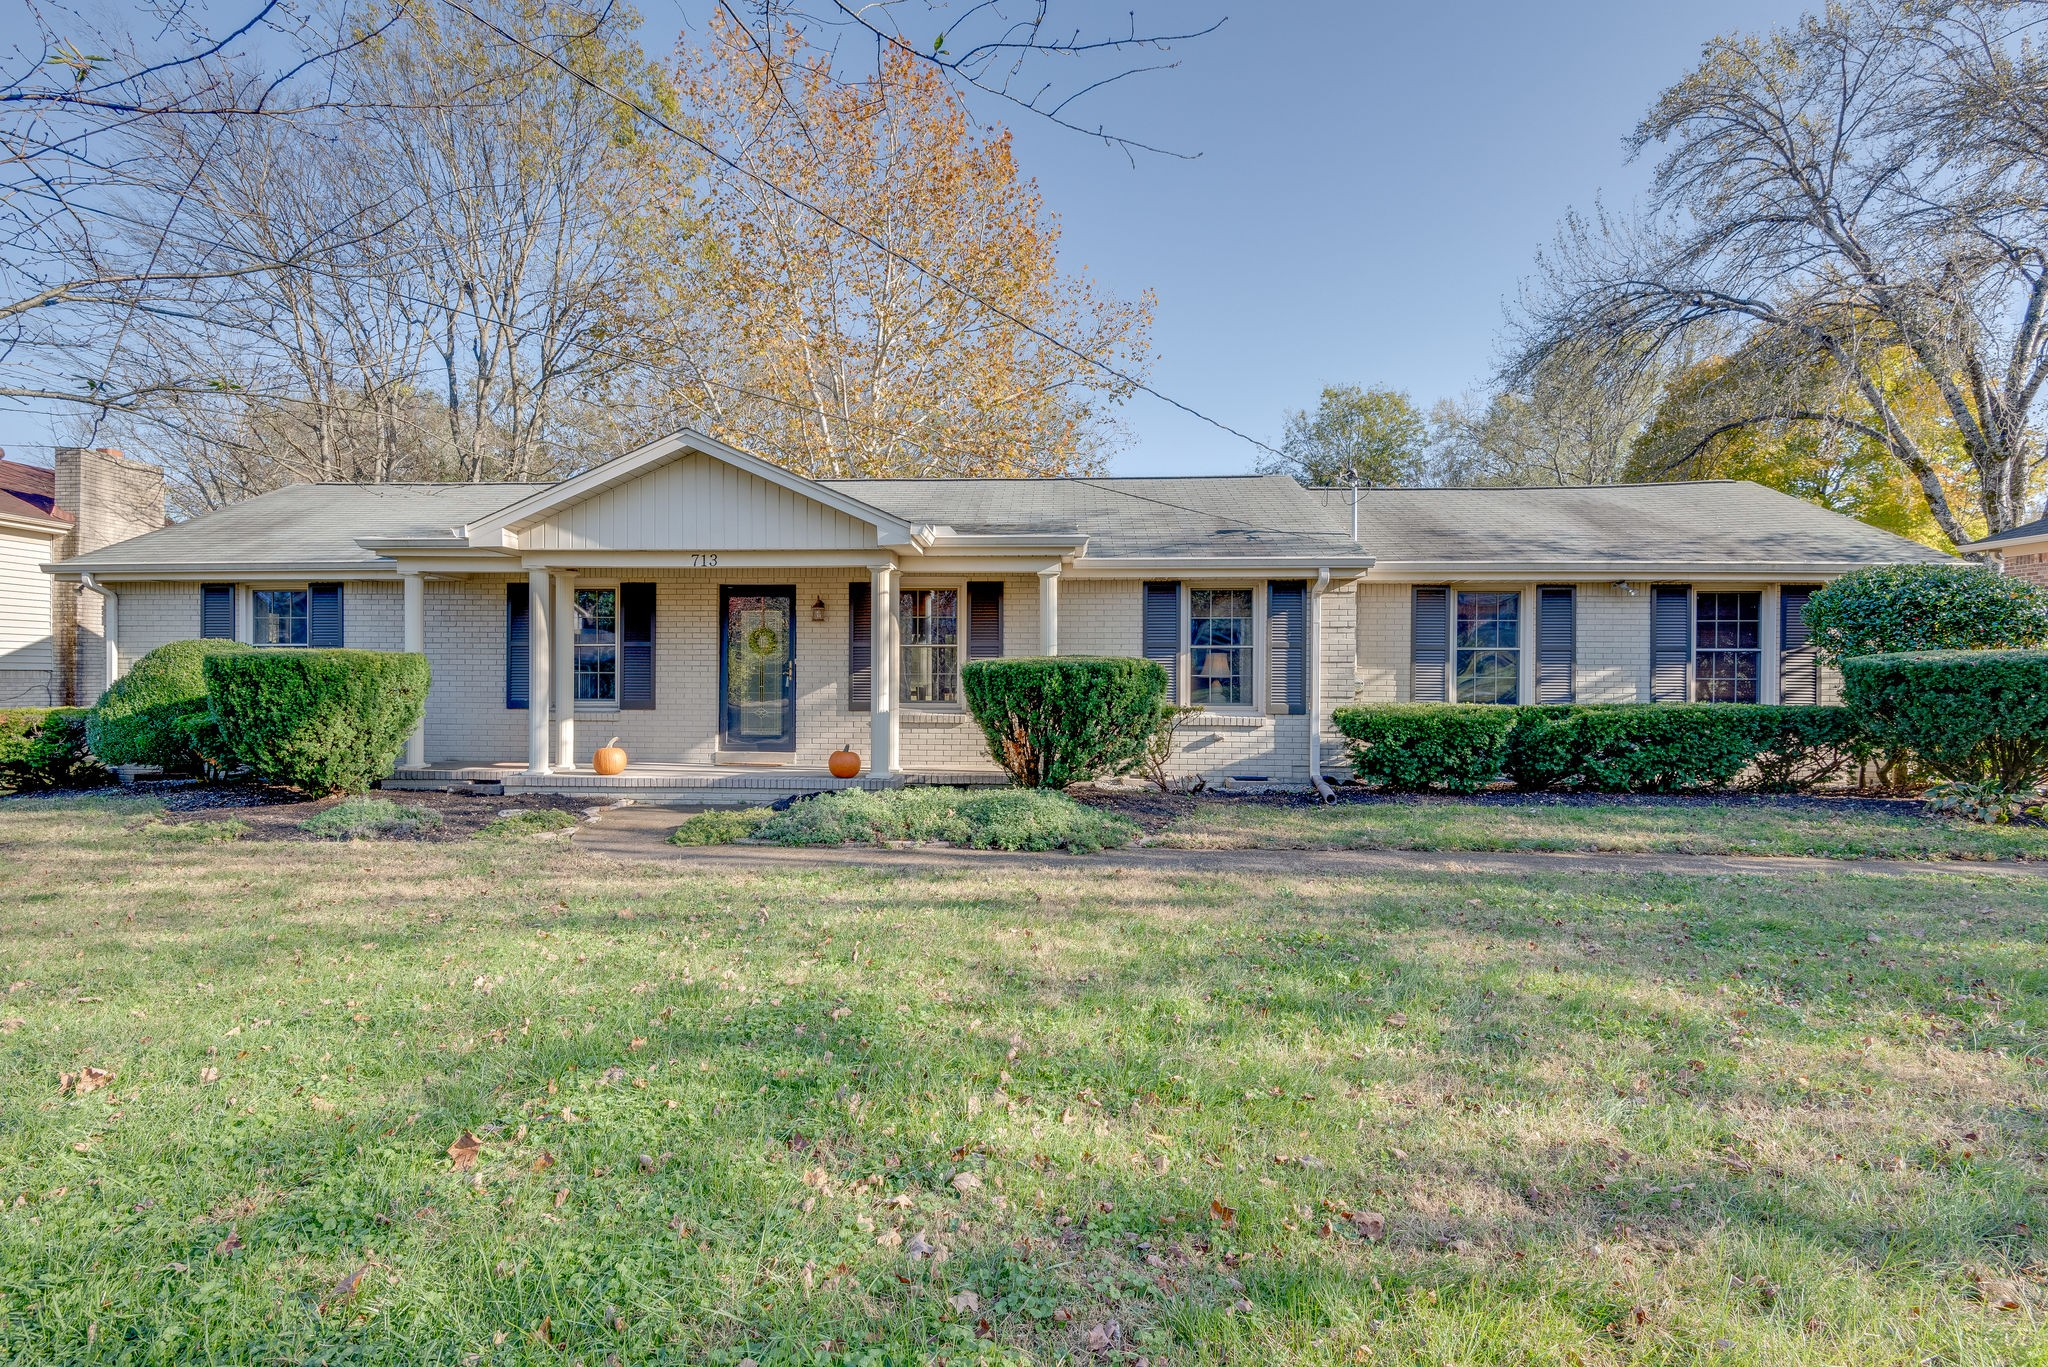 713 Harpeth Bend Dr, Bellevue in Davidson County County, TN 37221 Home for Sale